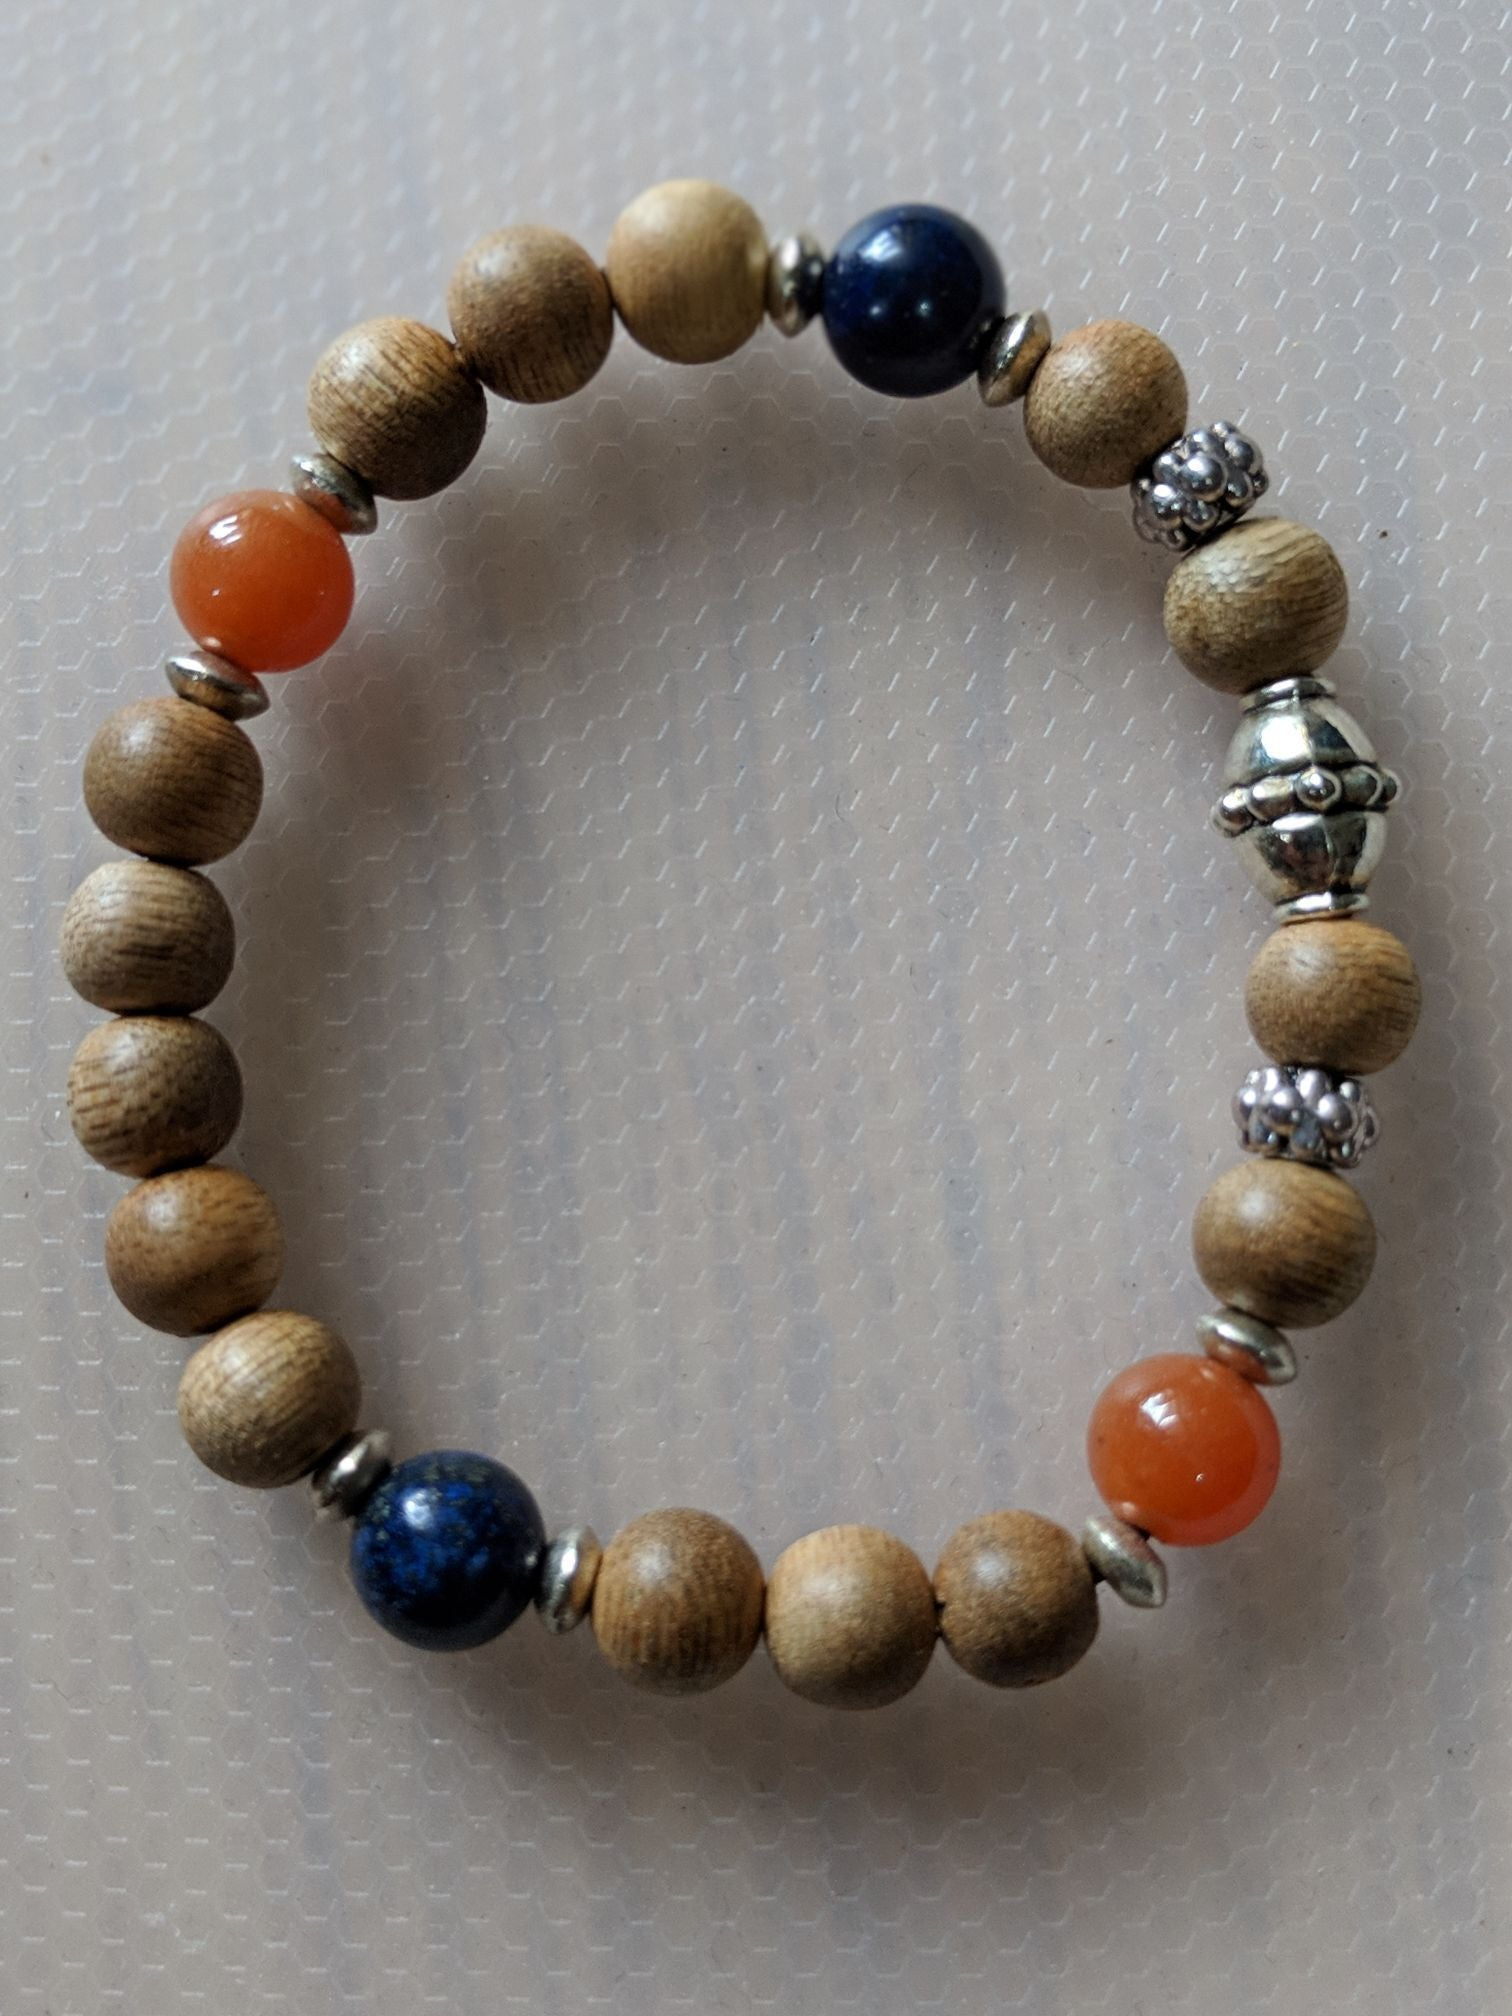 *New* The 4 Elements Metal, Wood, Water, Fire cultivated agarwood gemstone bracelet